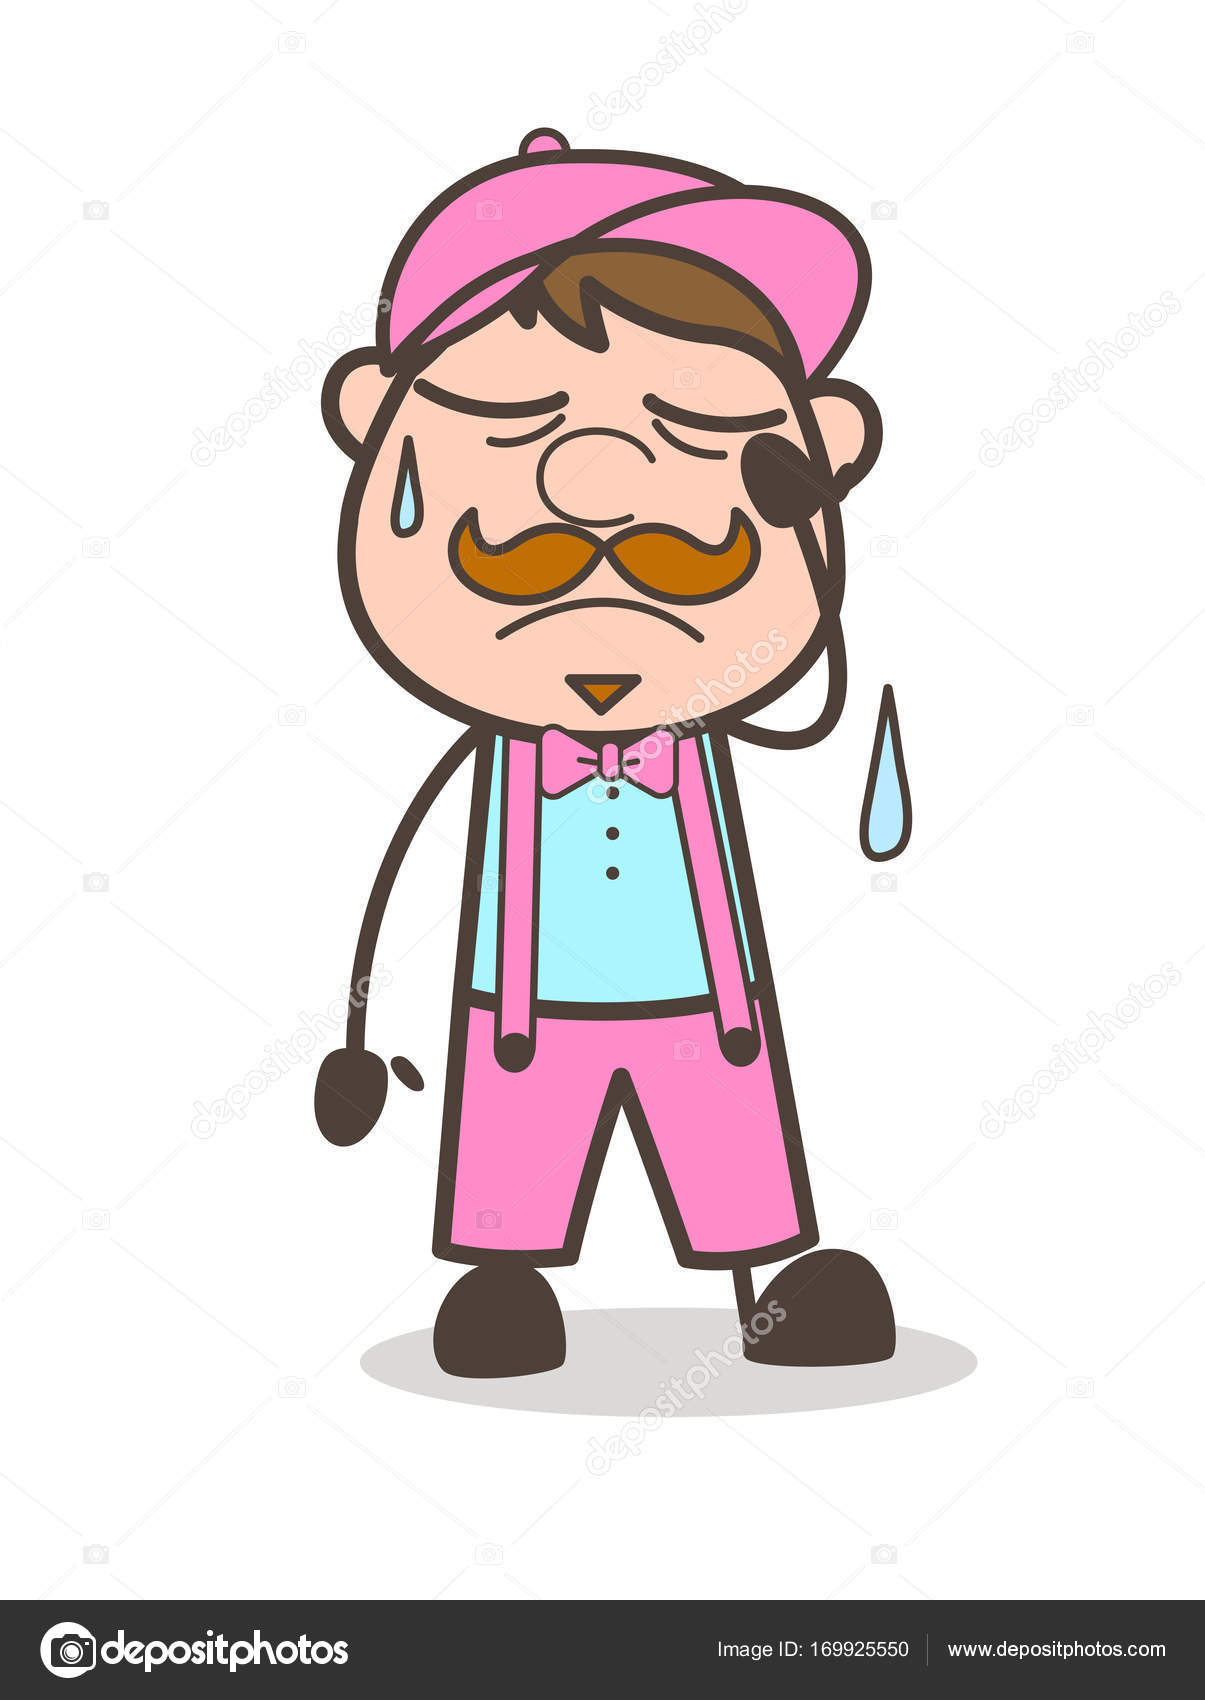 disappointed cartoon worker face expression � stock vector